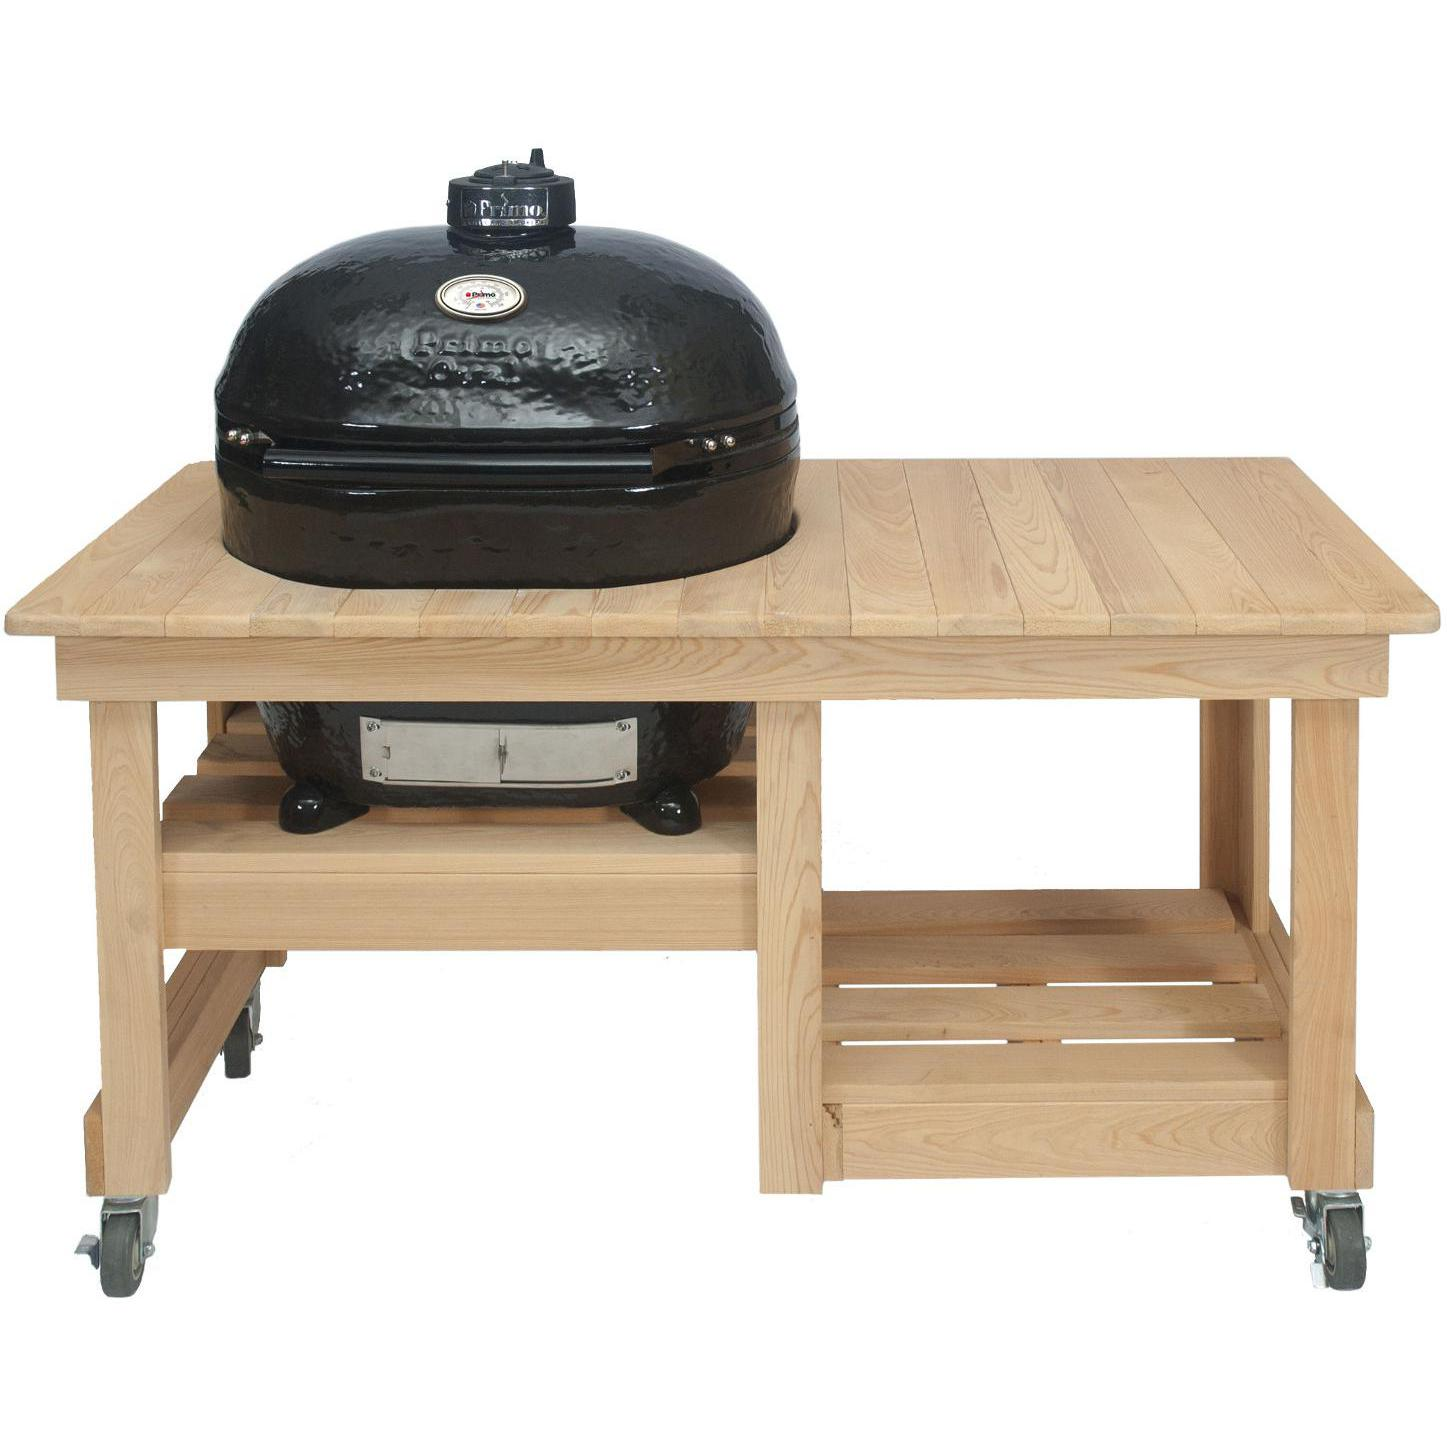 Primo Oval XL Ceramic Kamado Grill On Countertop Cypress Table - 778 + 612